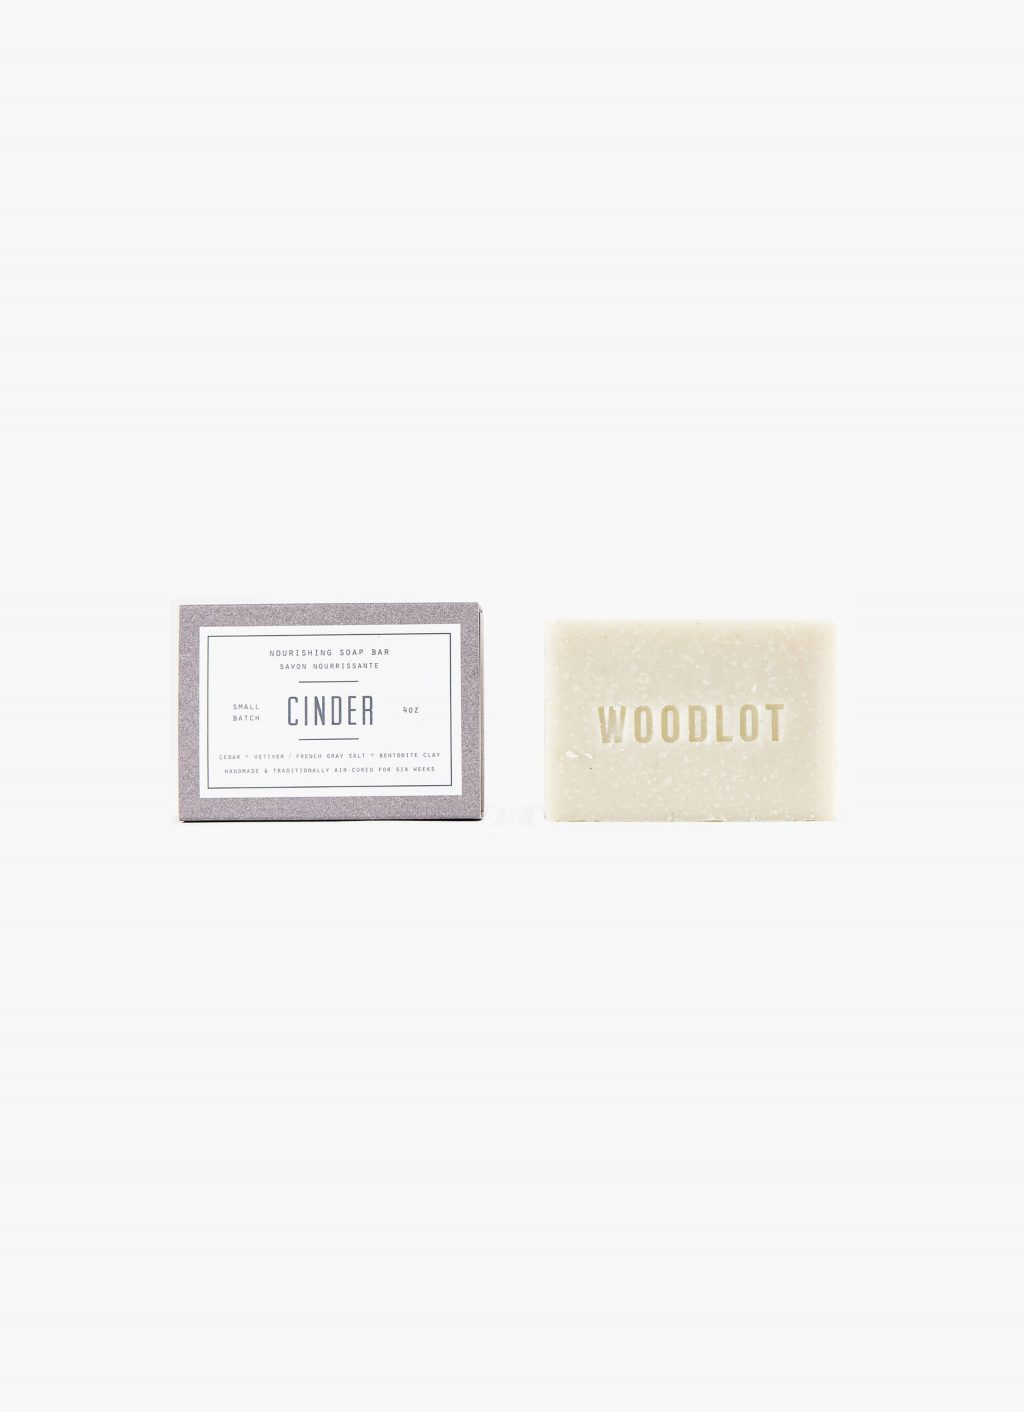 Woodlot - 4OZ- Soap Bar - Cinder